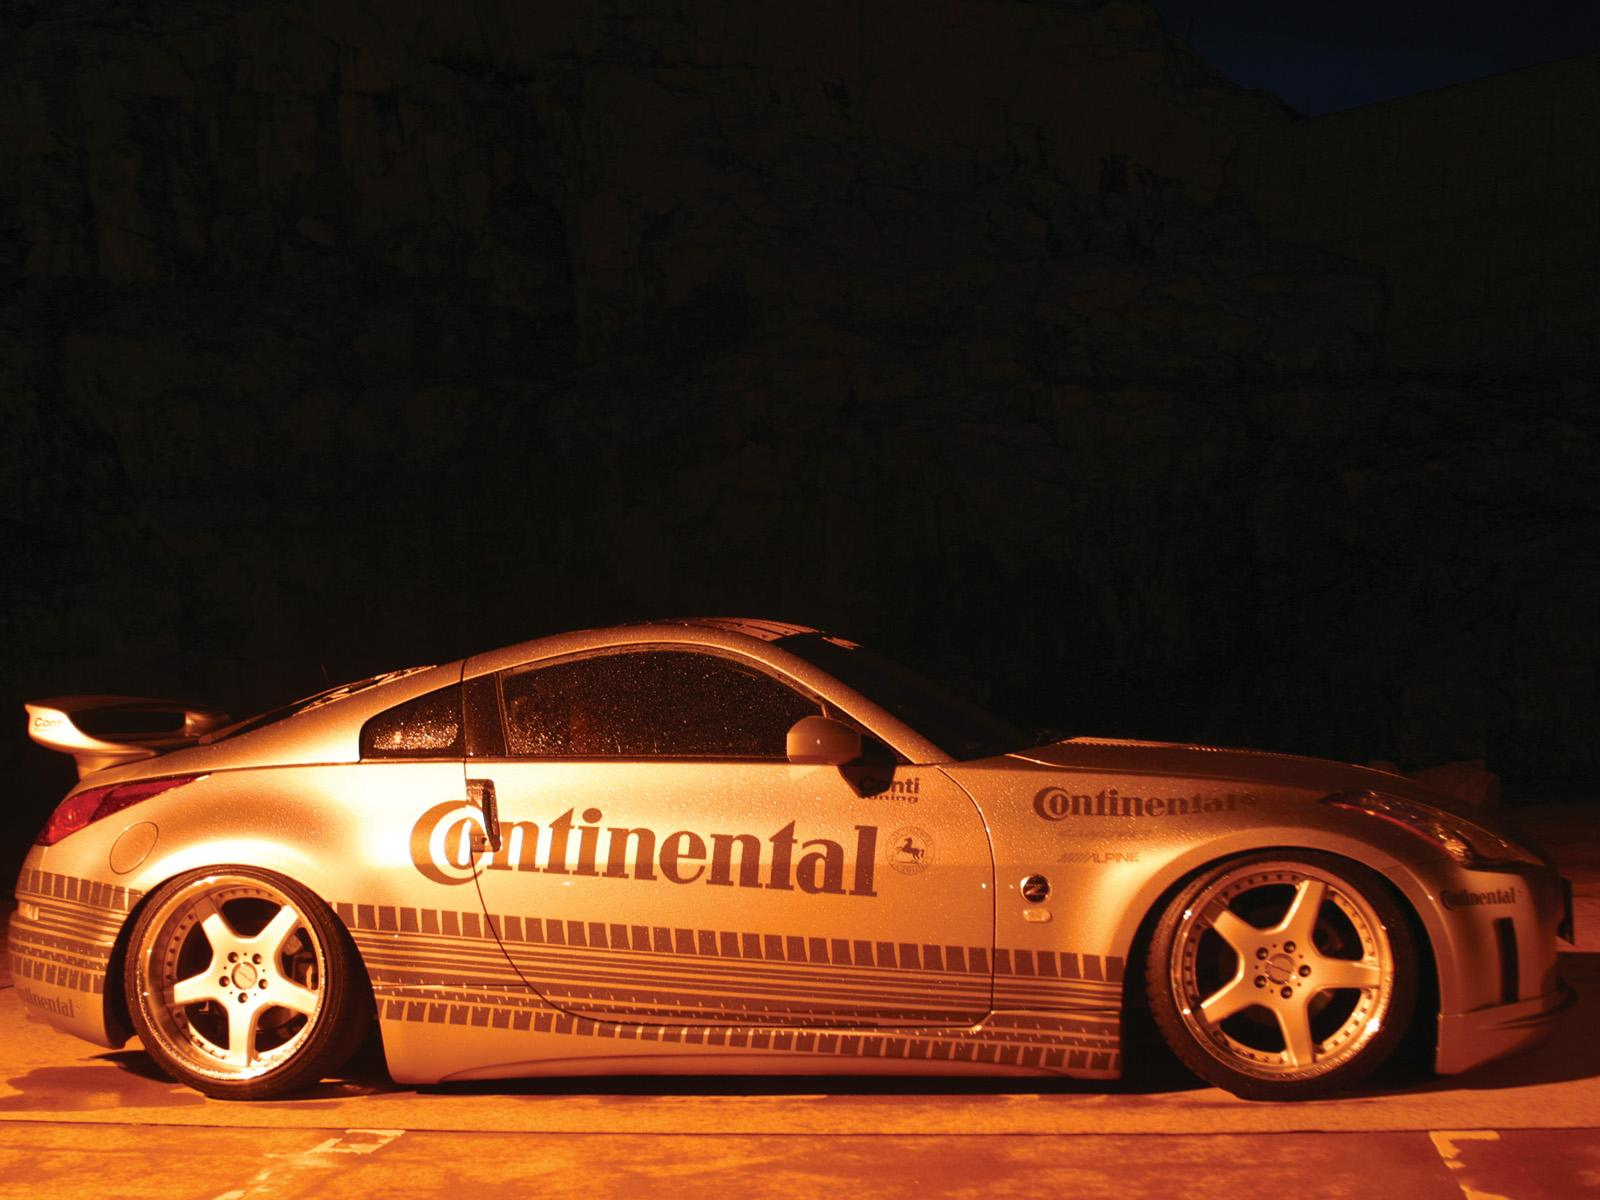 Wald nissan 350z photos photogallery with 8 pics carsbase new wald nissan 350z pictures vanachro Choice Image